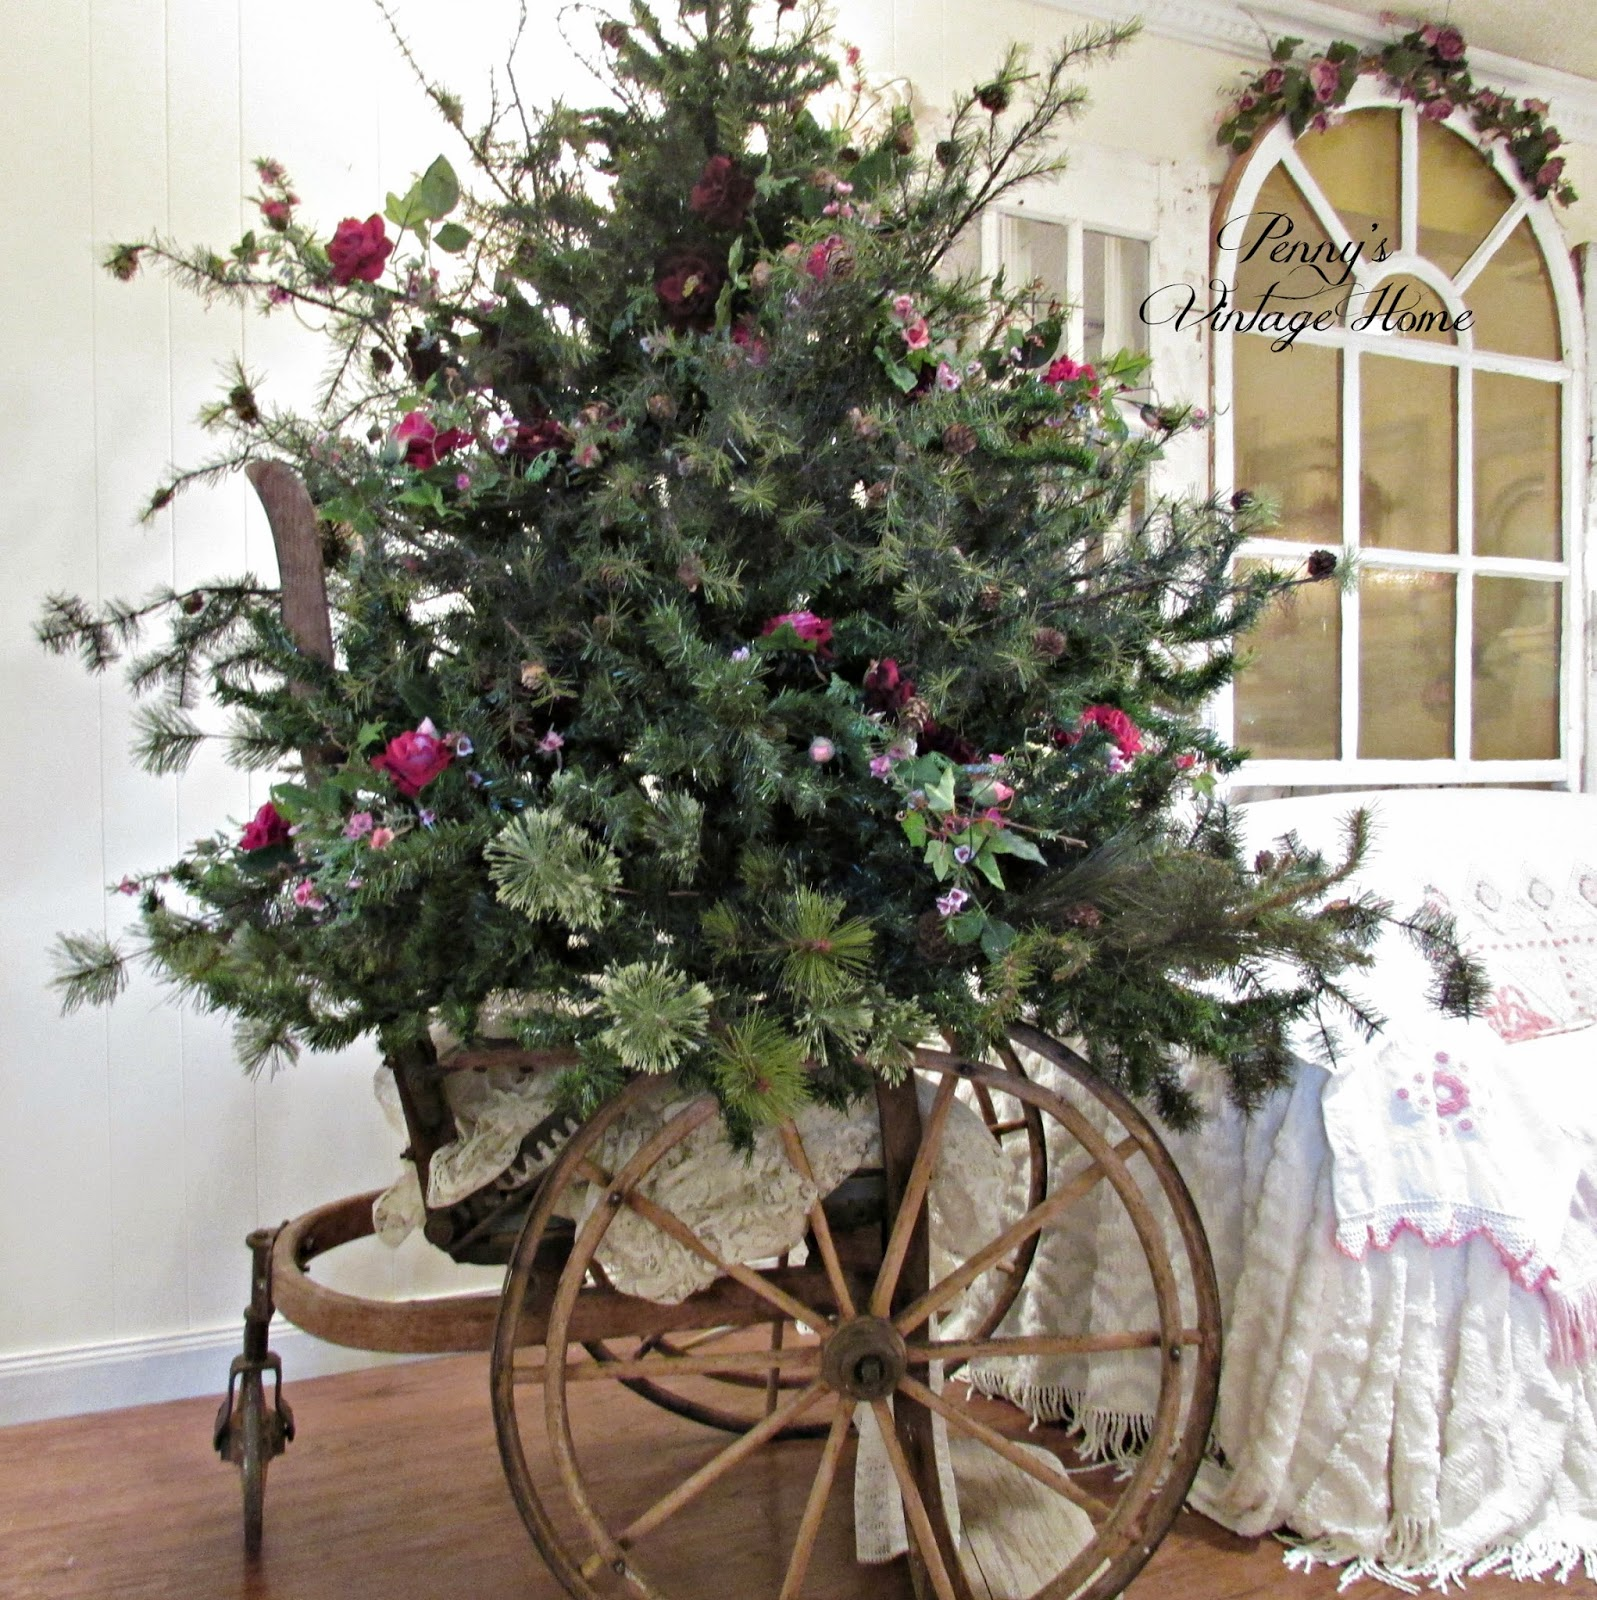 I Have Been Hunting For A Short Fat Artificial Christmas Tree Quite While With No Luck You Can Find Live Trees That Look Like What Wanted